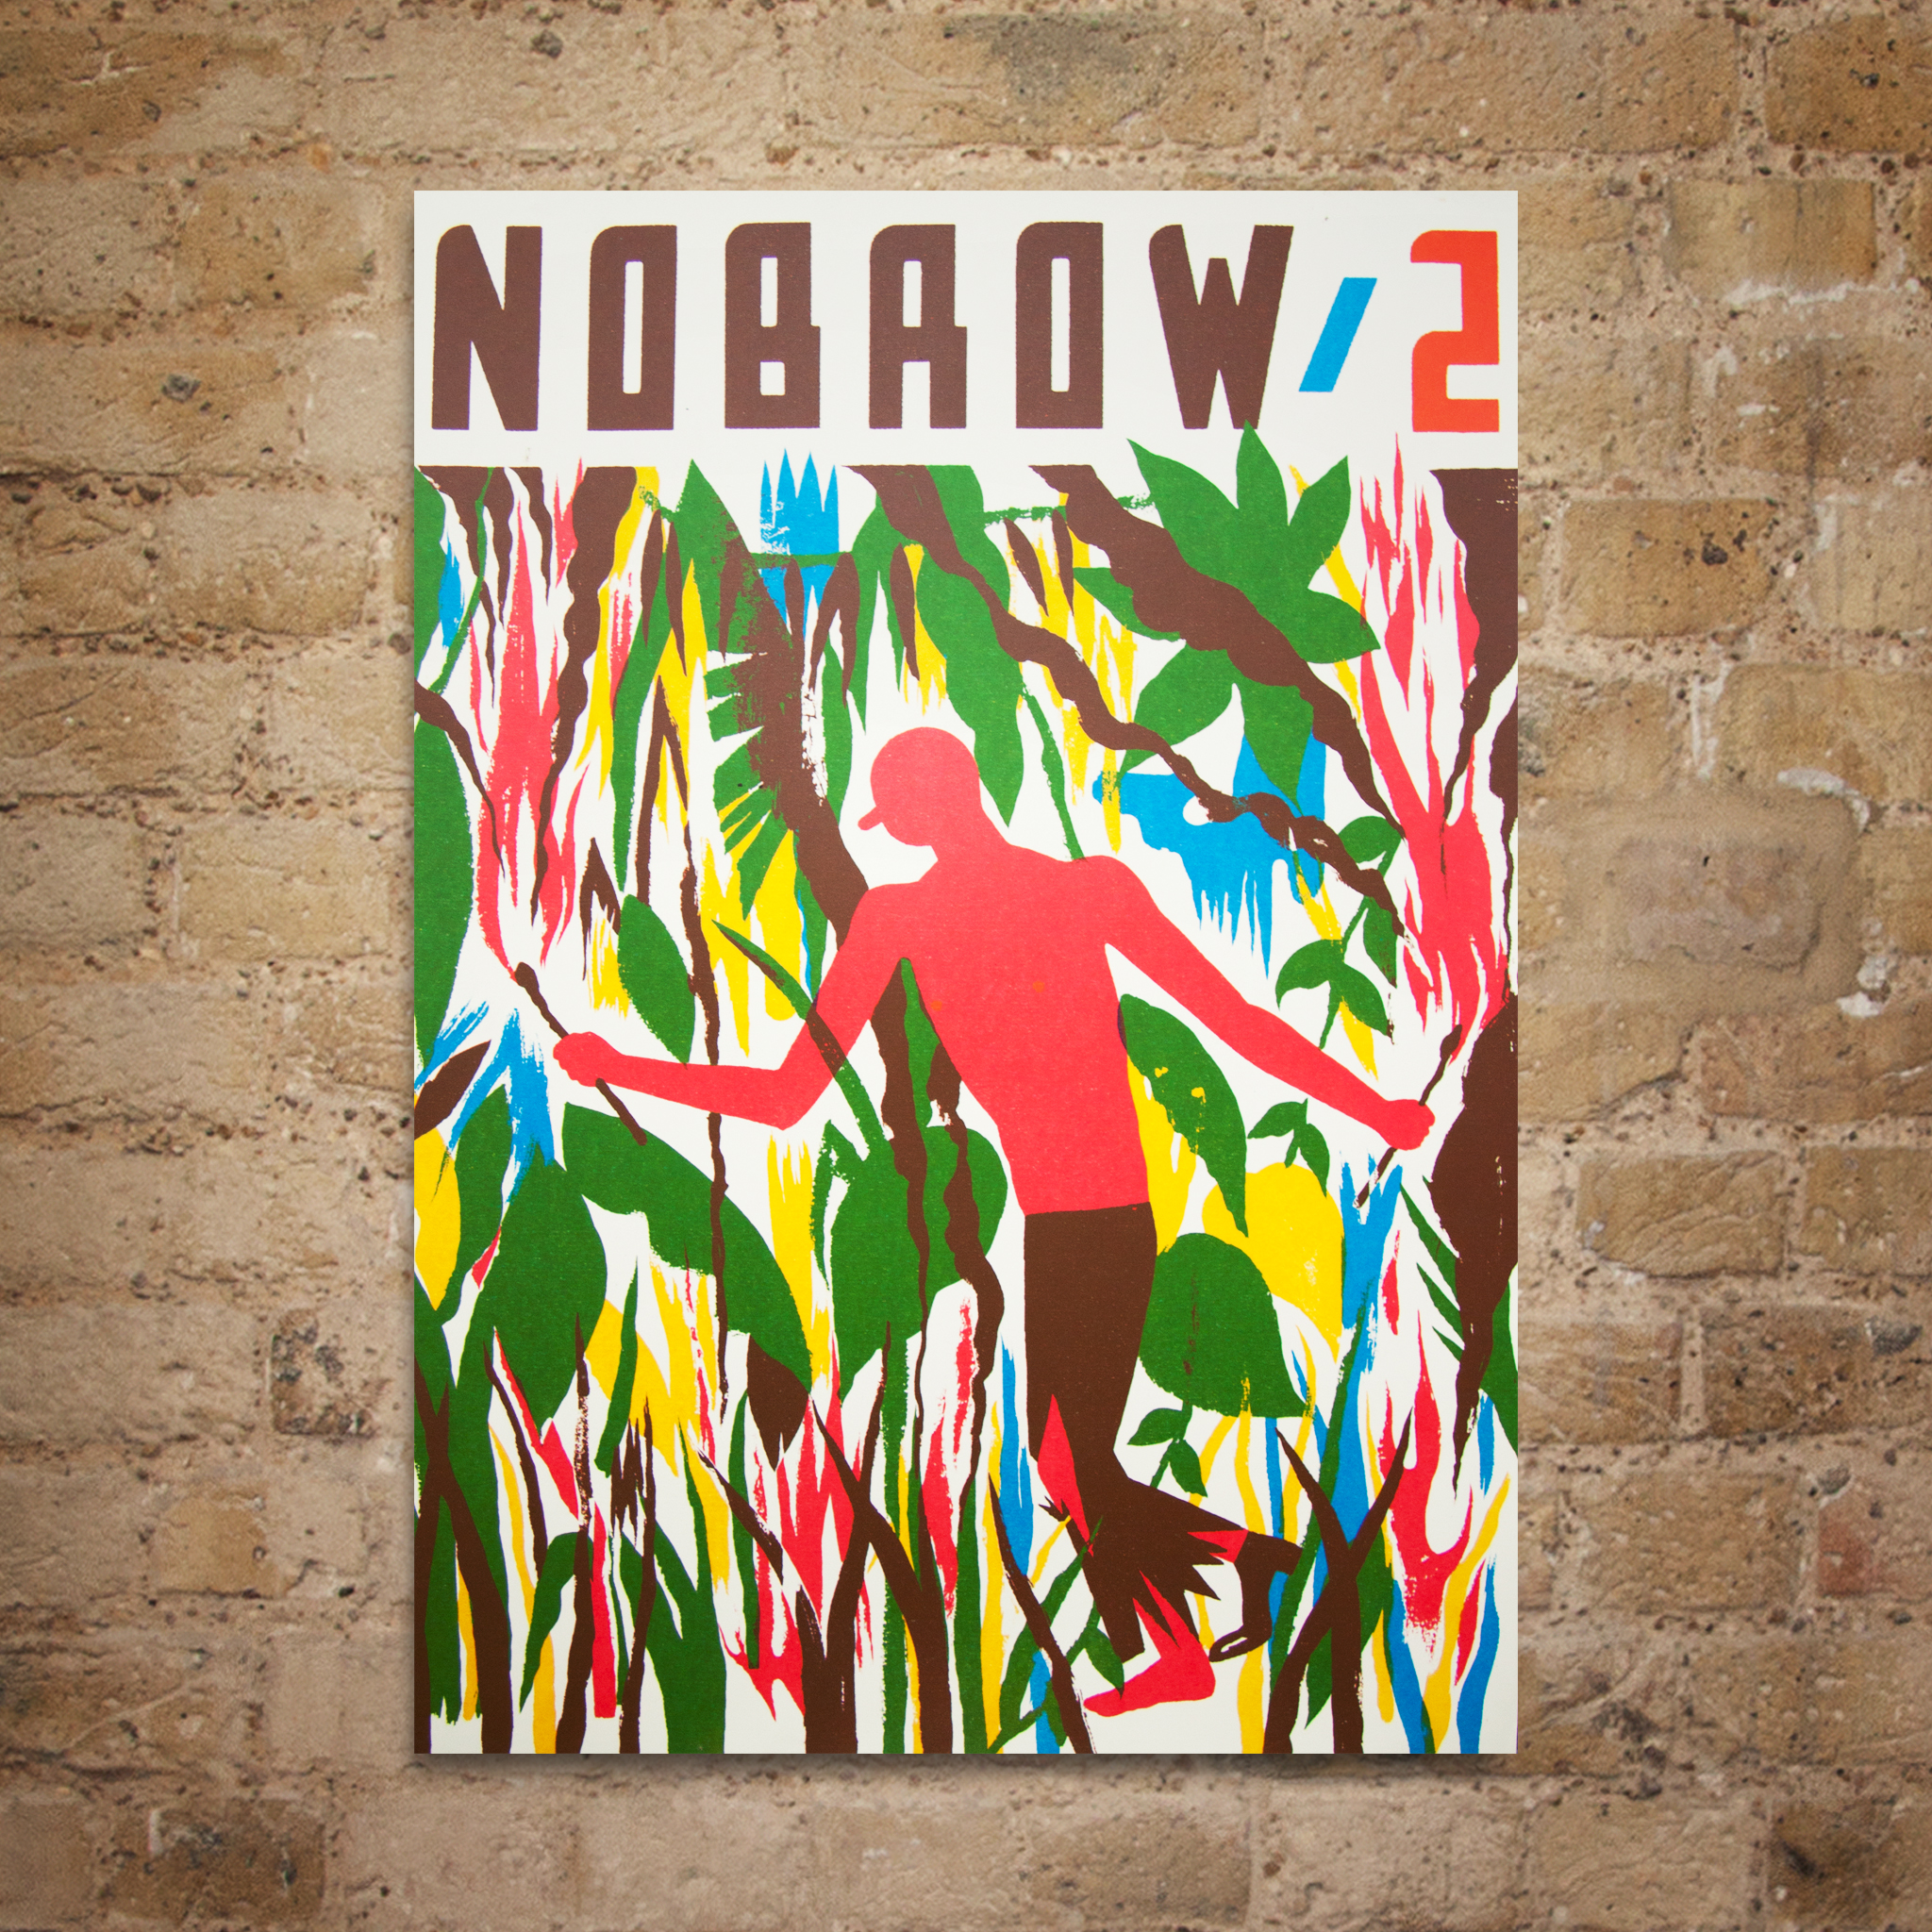 Nobrow 2: The Jungle Screenprint